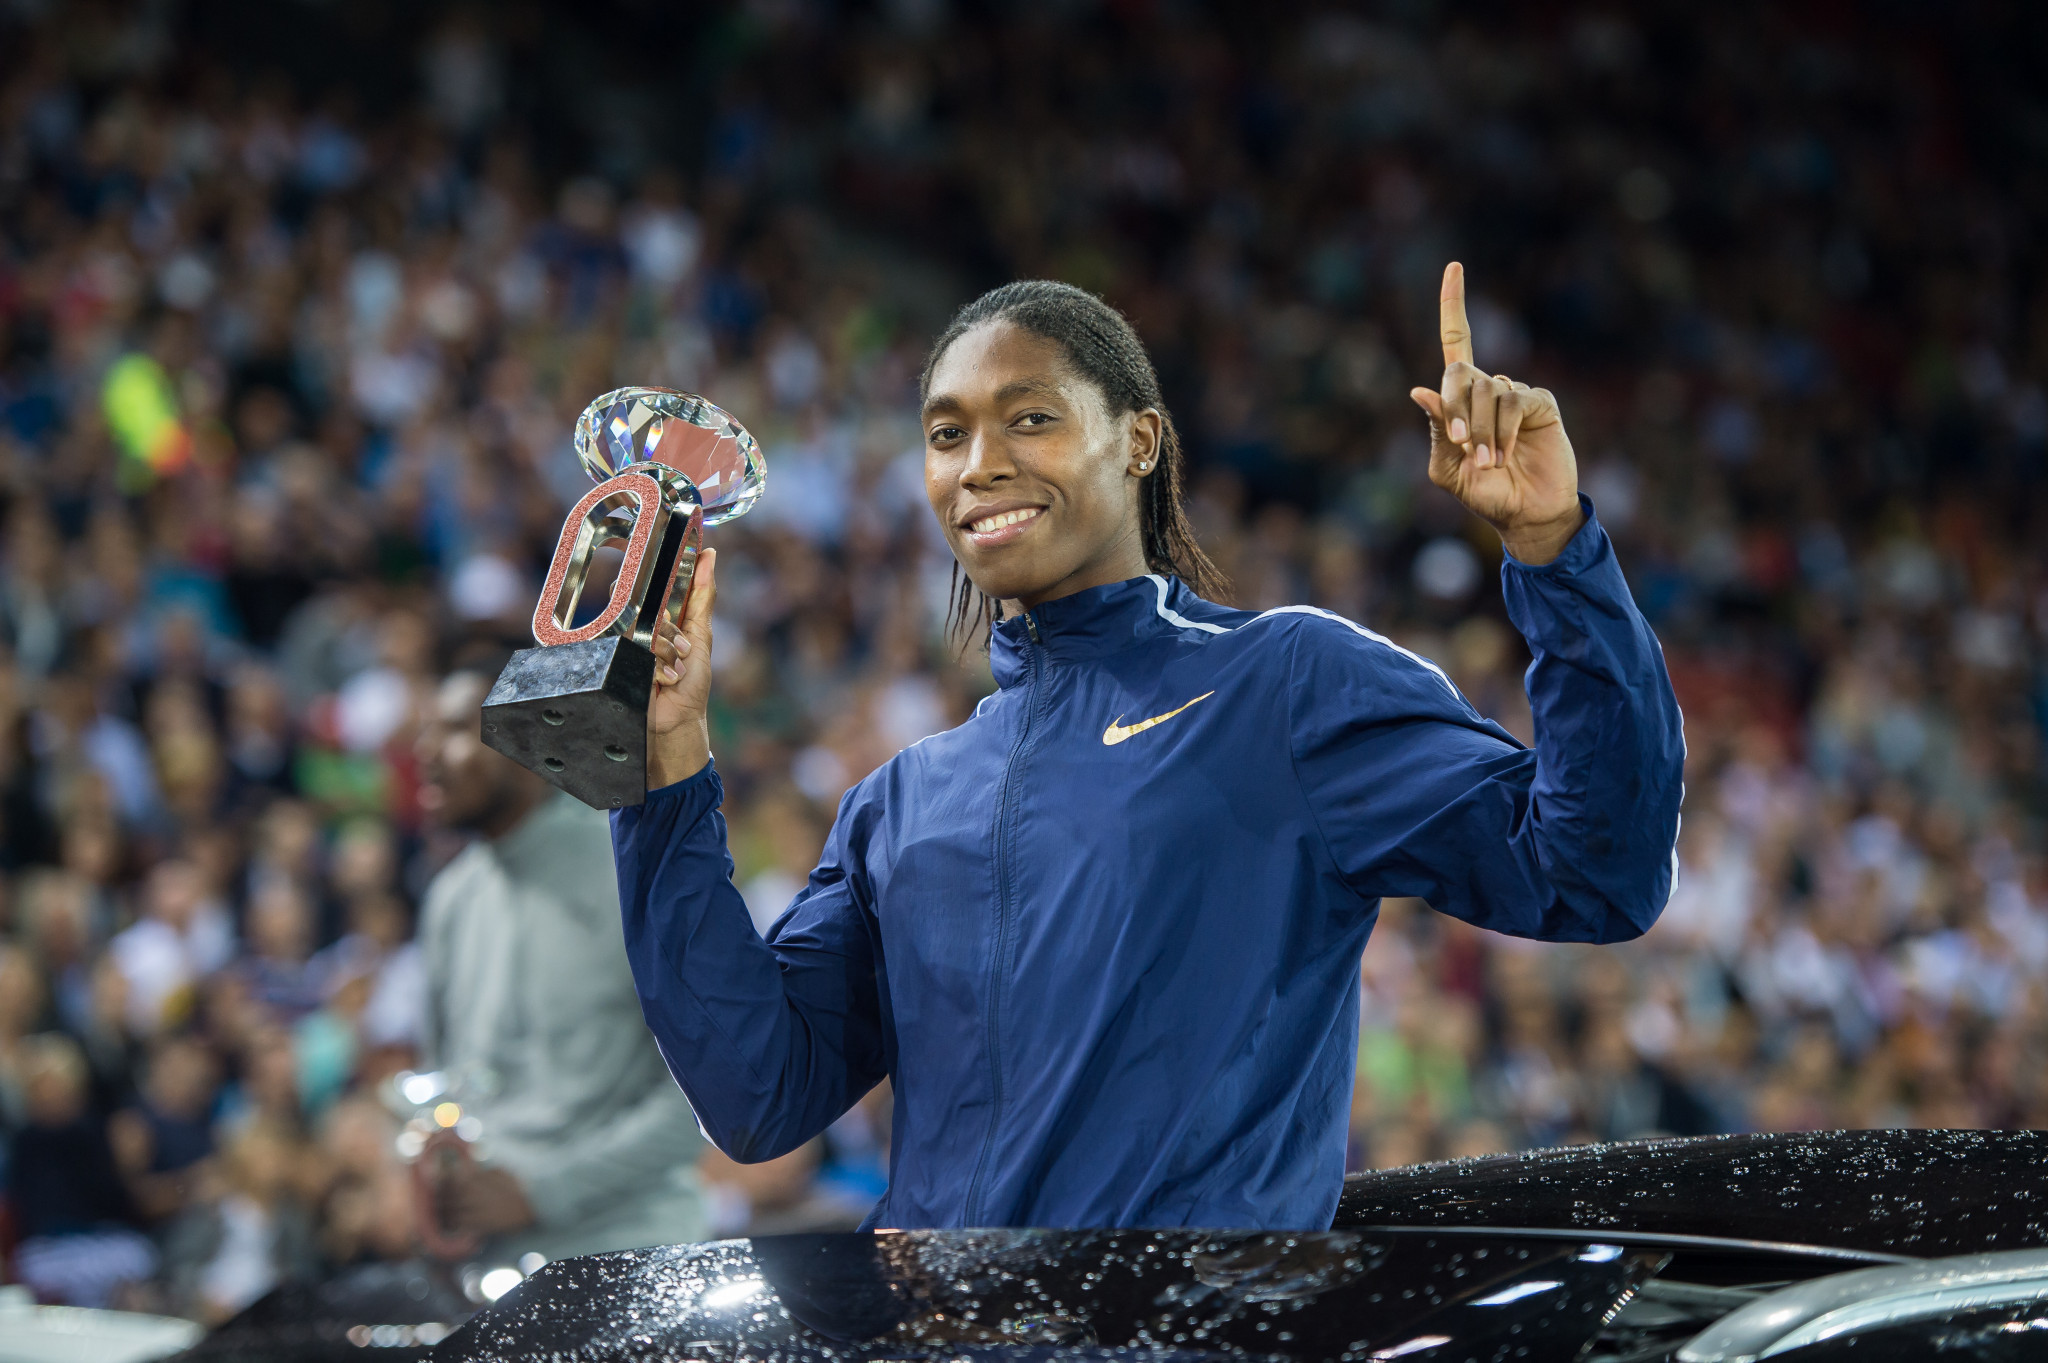 Caster Semenya will attempt an 800m and 1,500m double at Gold Coast 2018 ©Getty Images